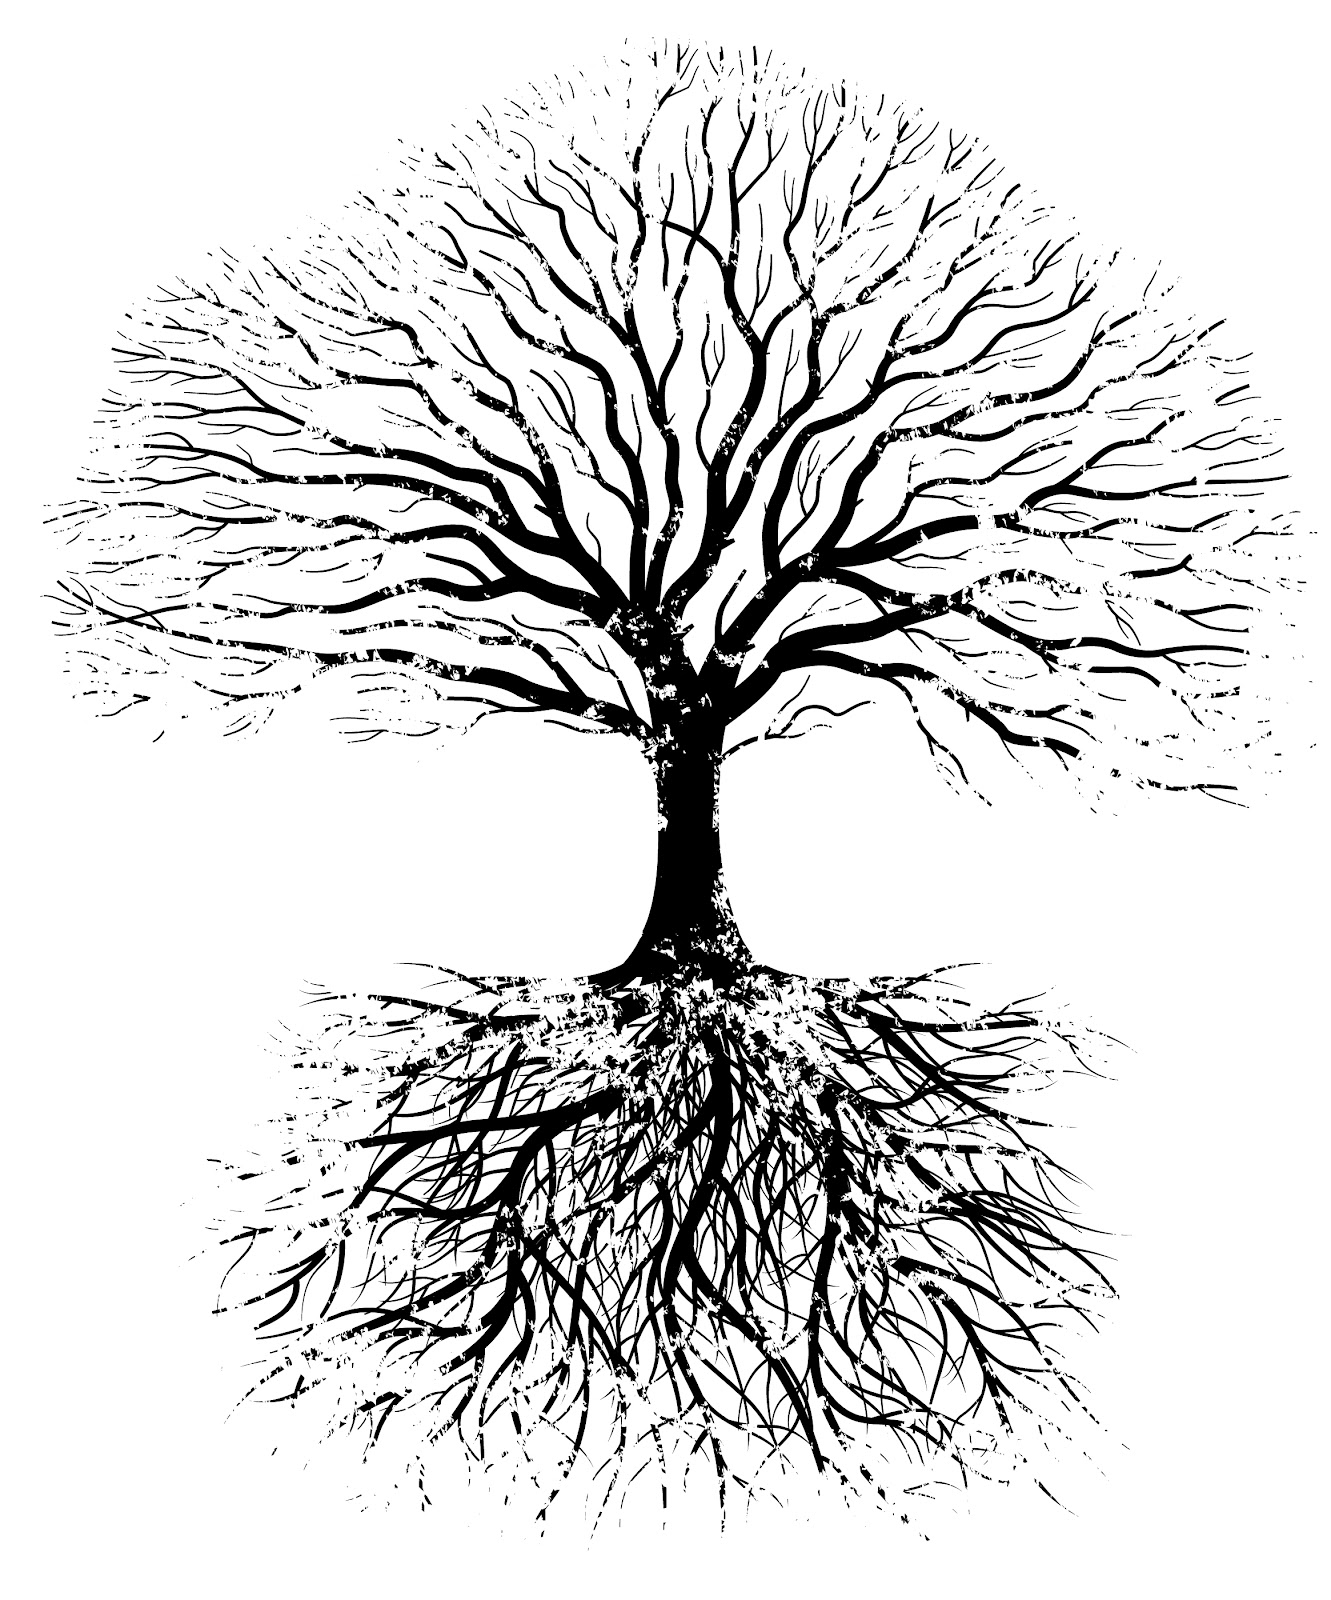 Similiar Tree With Roots Drawings Keywords.